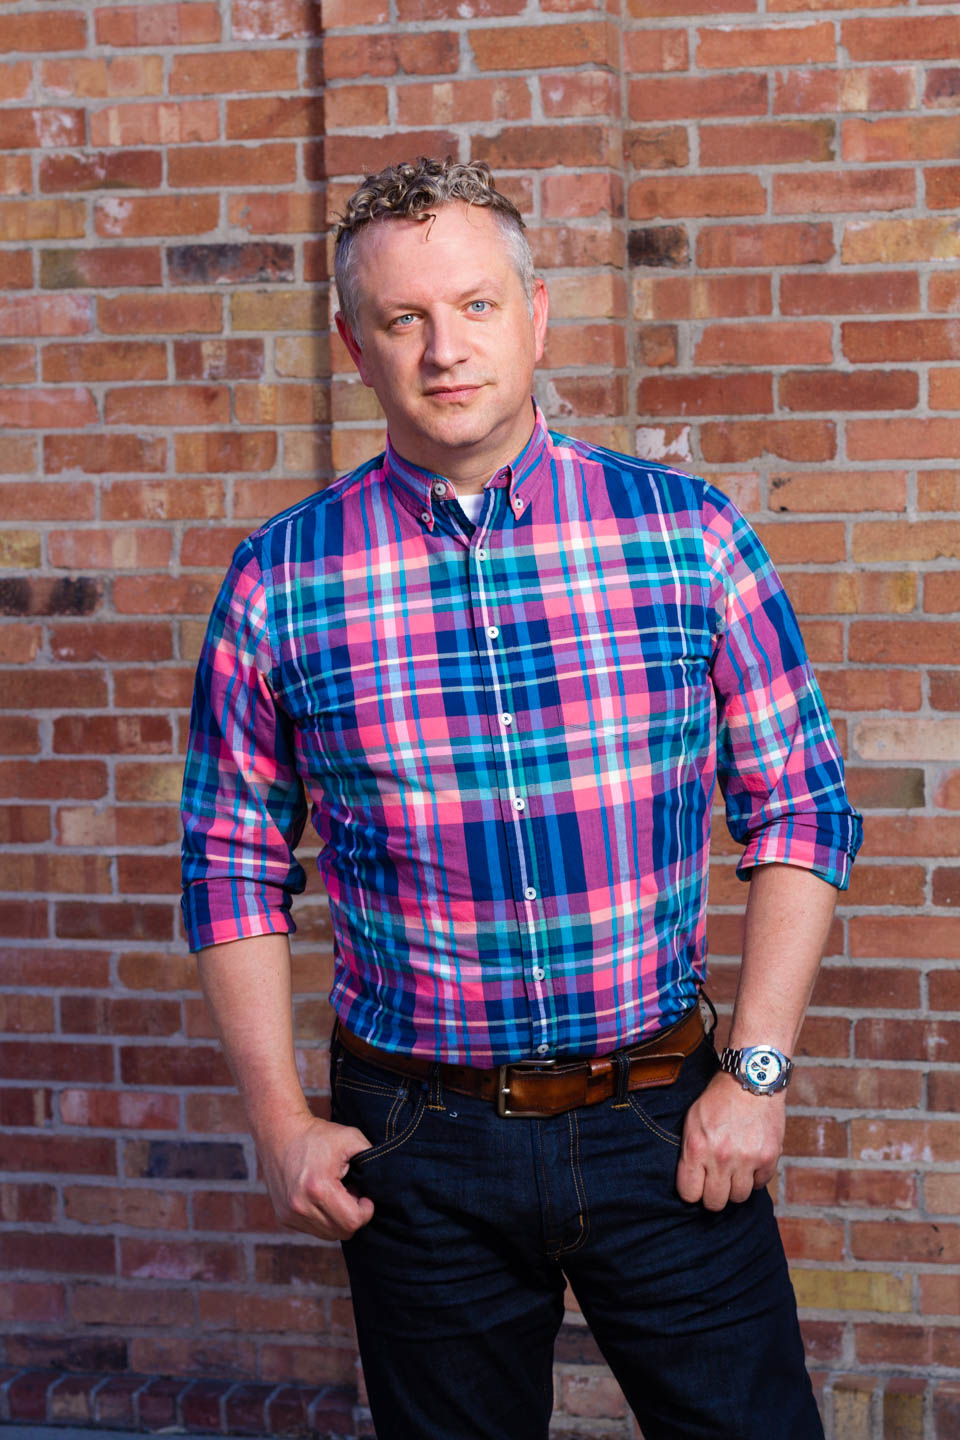 dav.d photographed in Provo